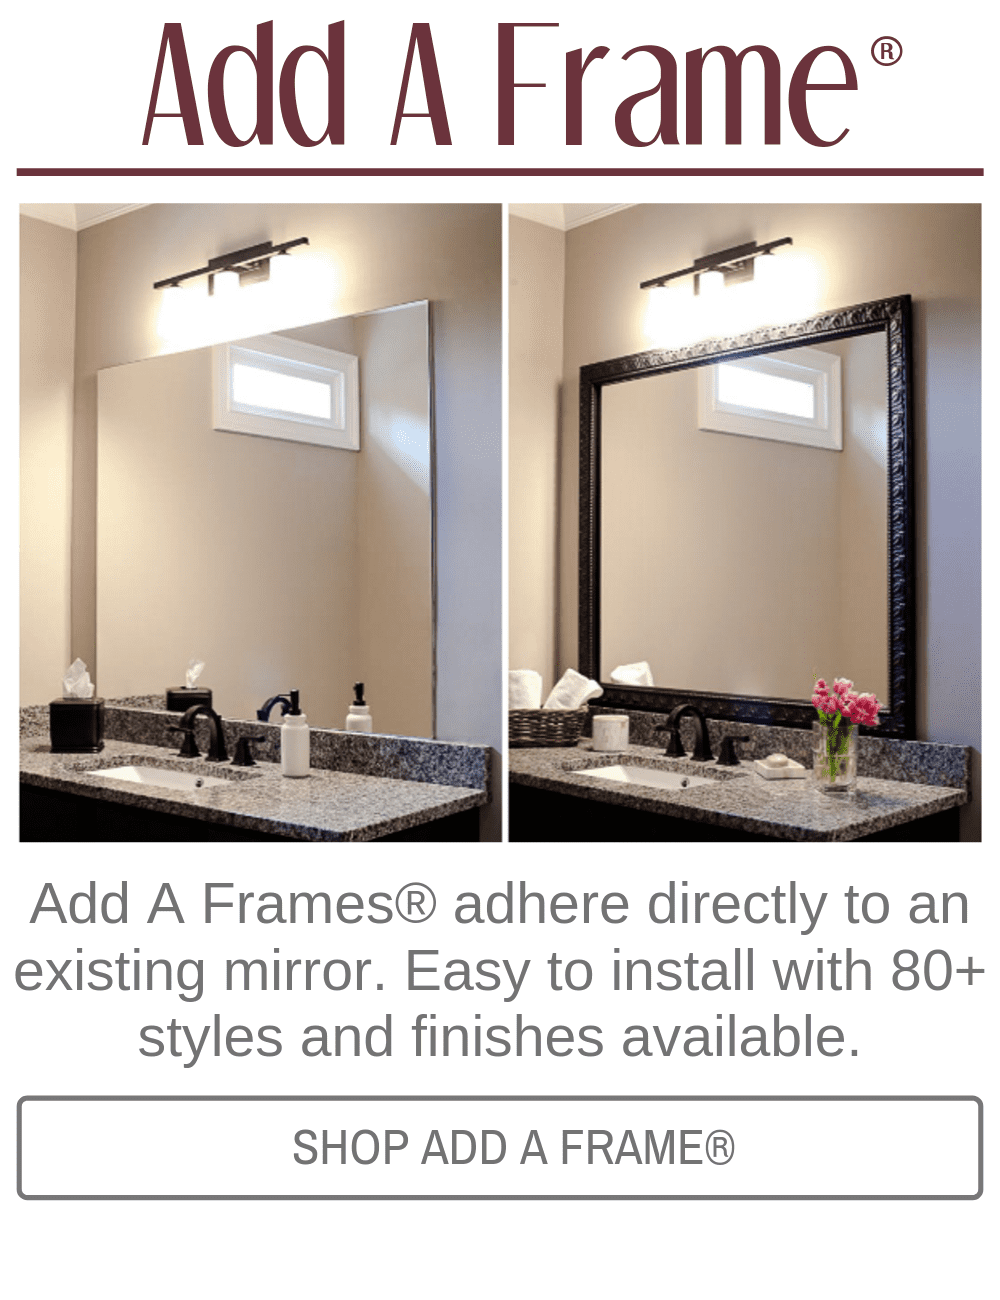 Custom Diy Bathroom Mirror Frame Kits